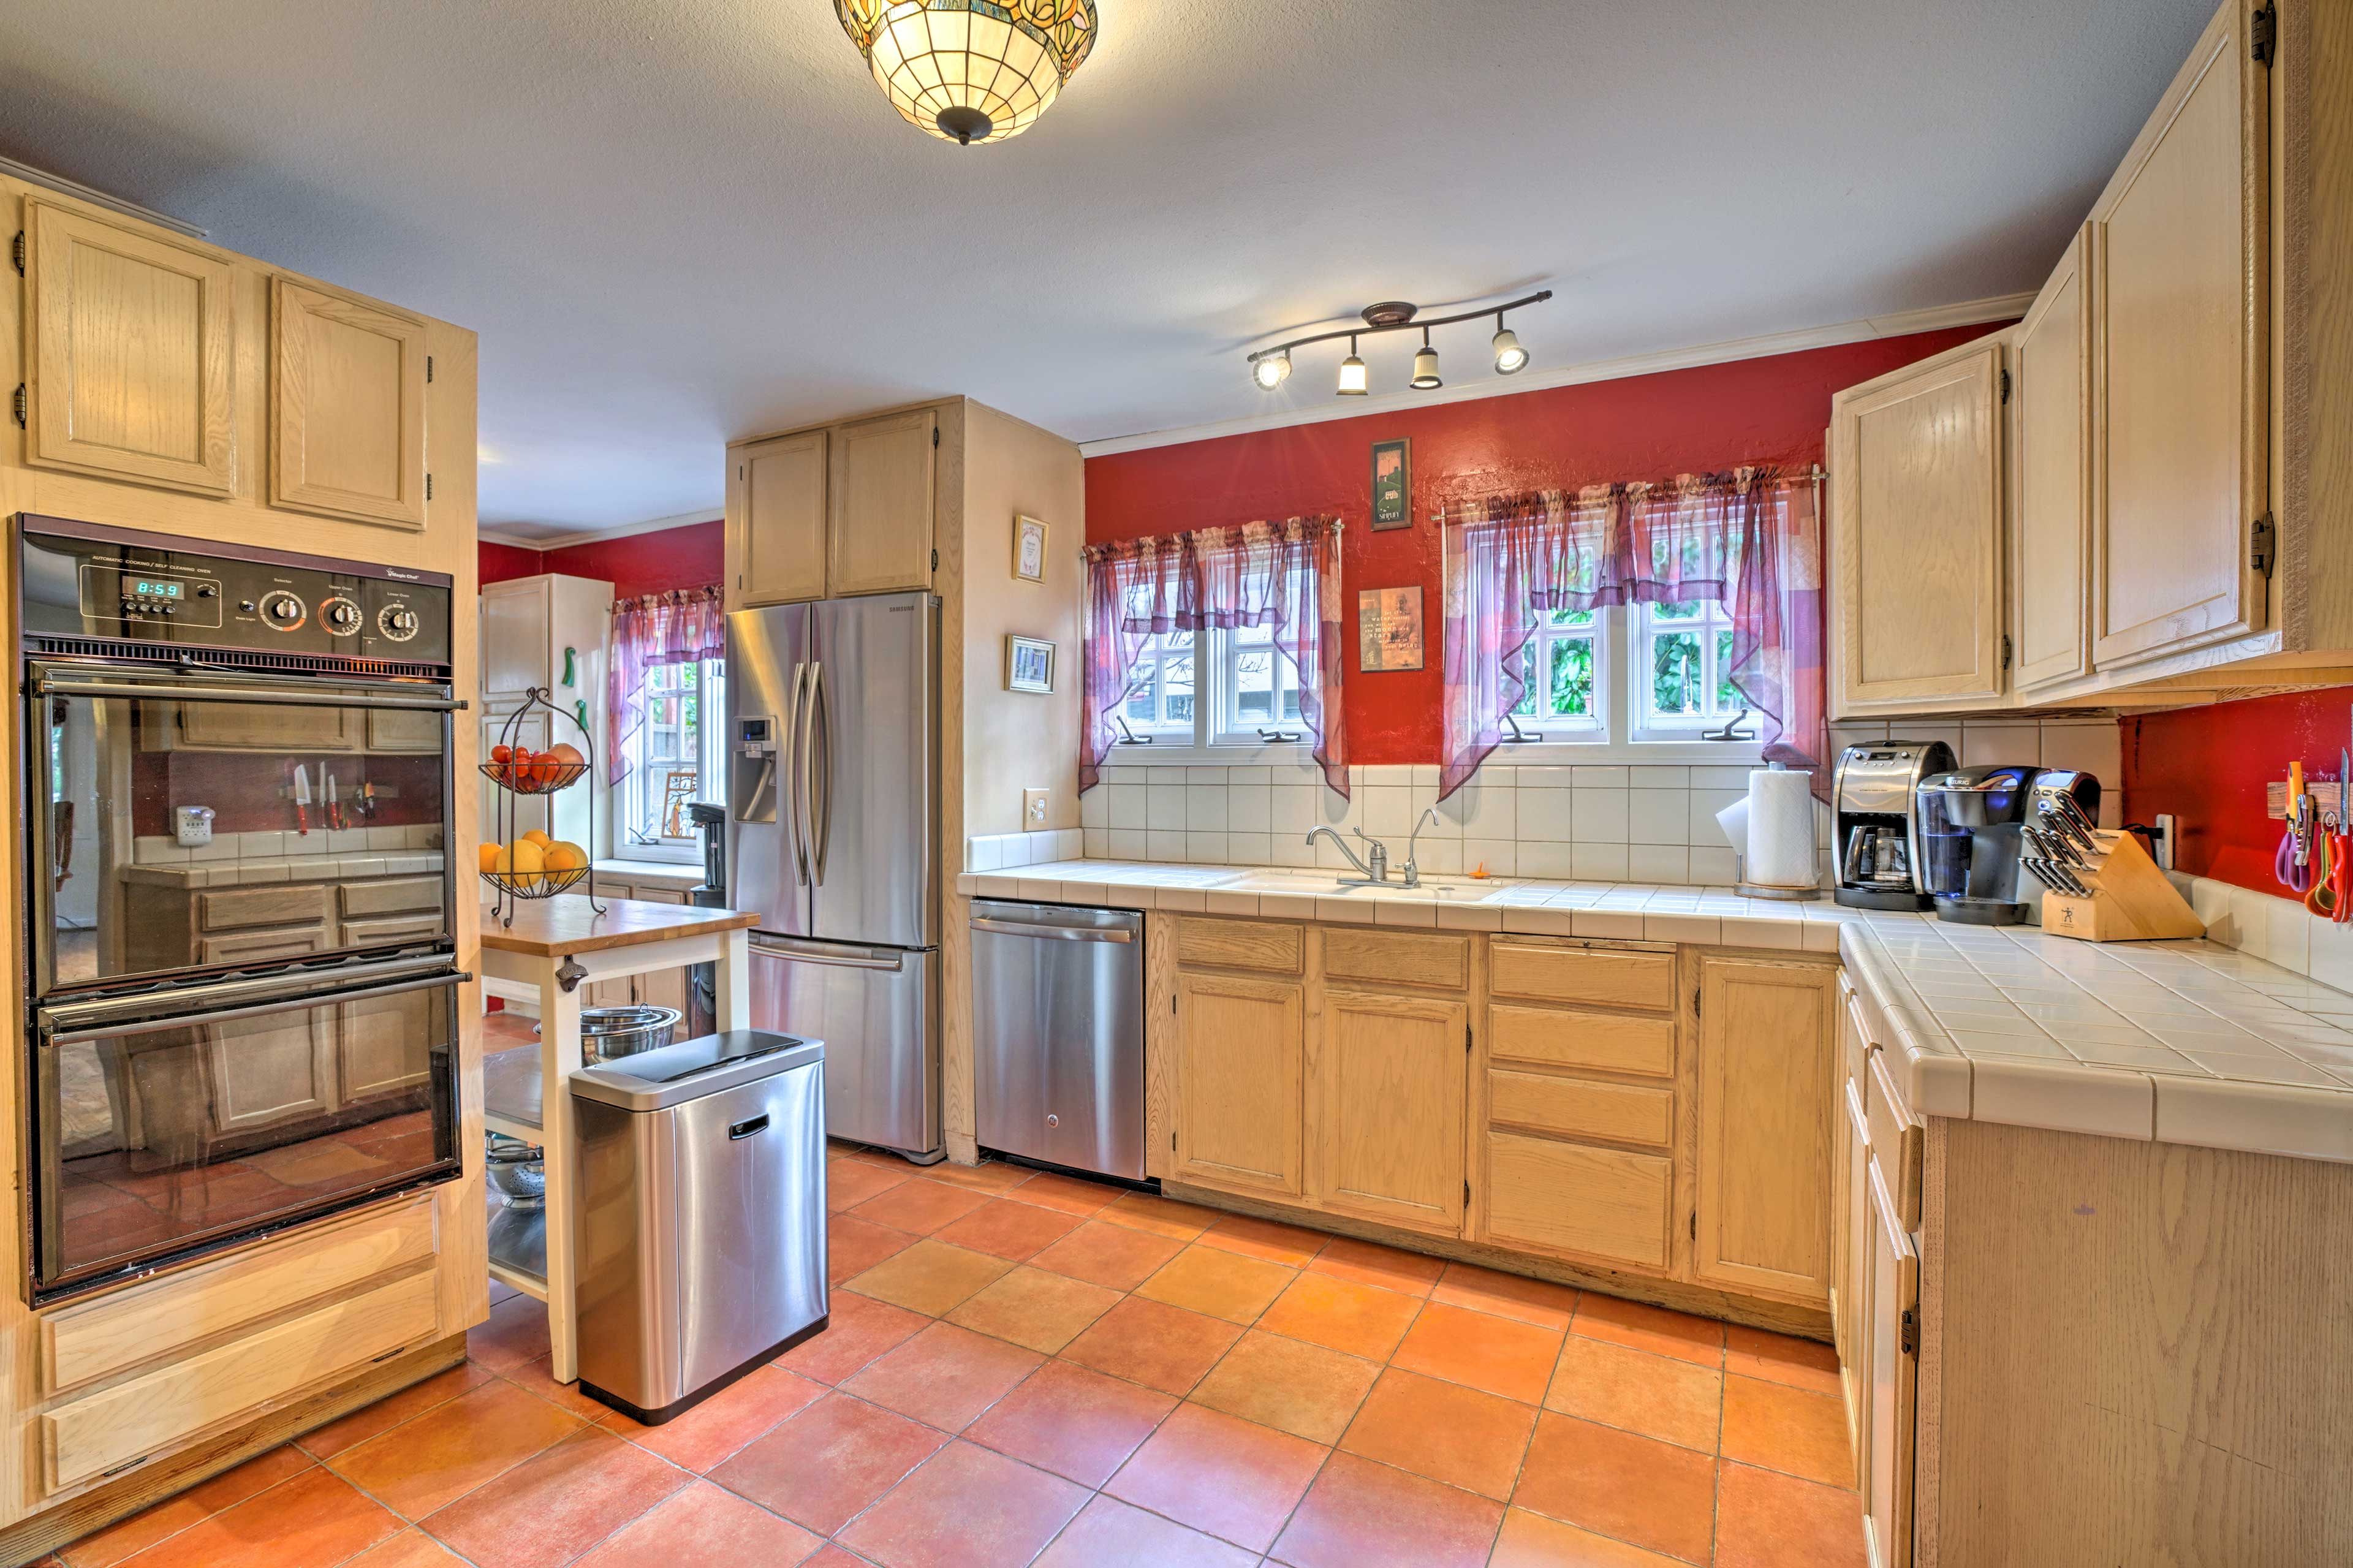 The fully equipped kitchen has everything you'll need to whip up specialties.